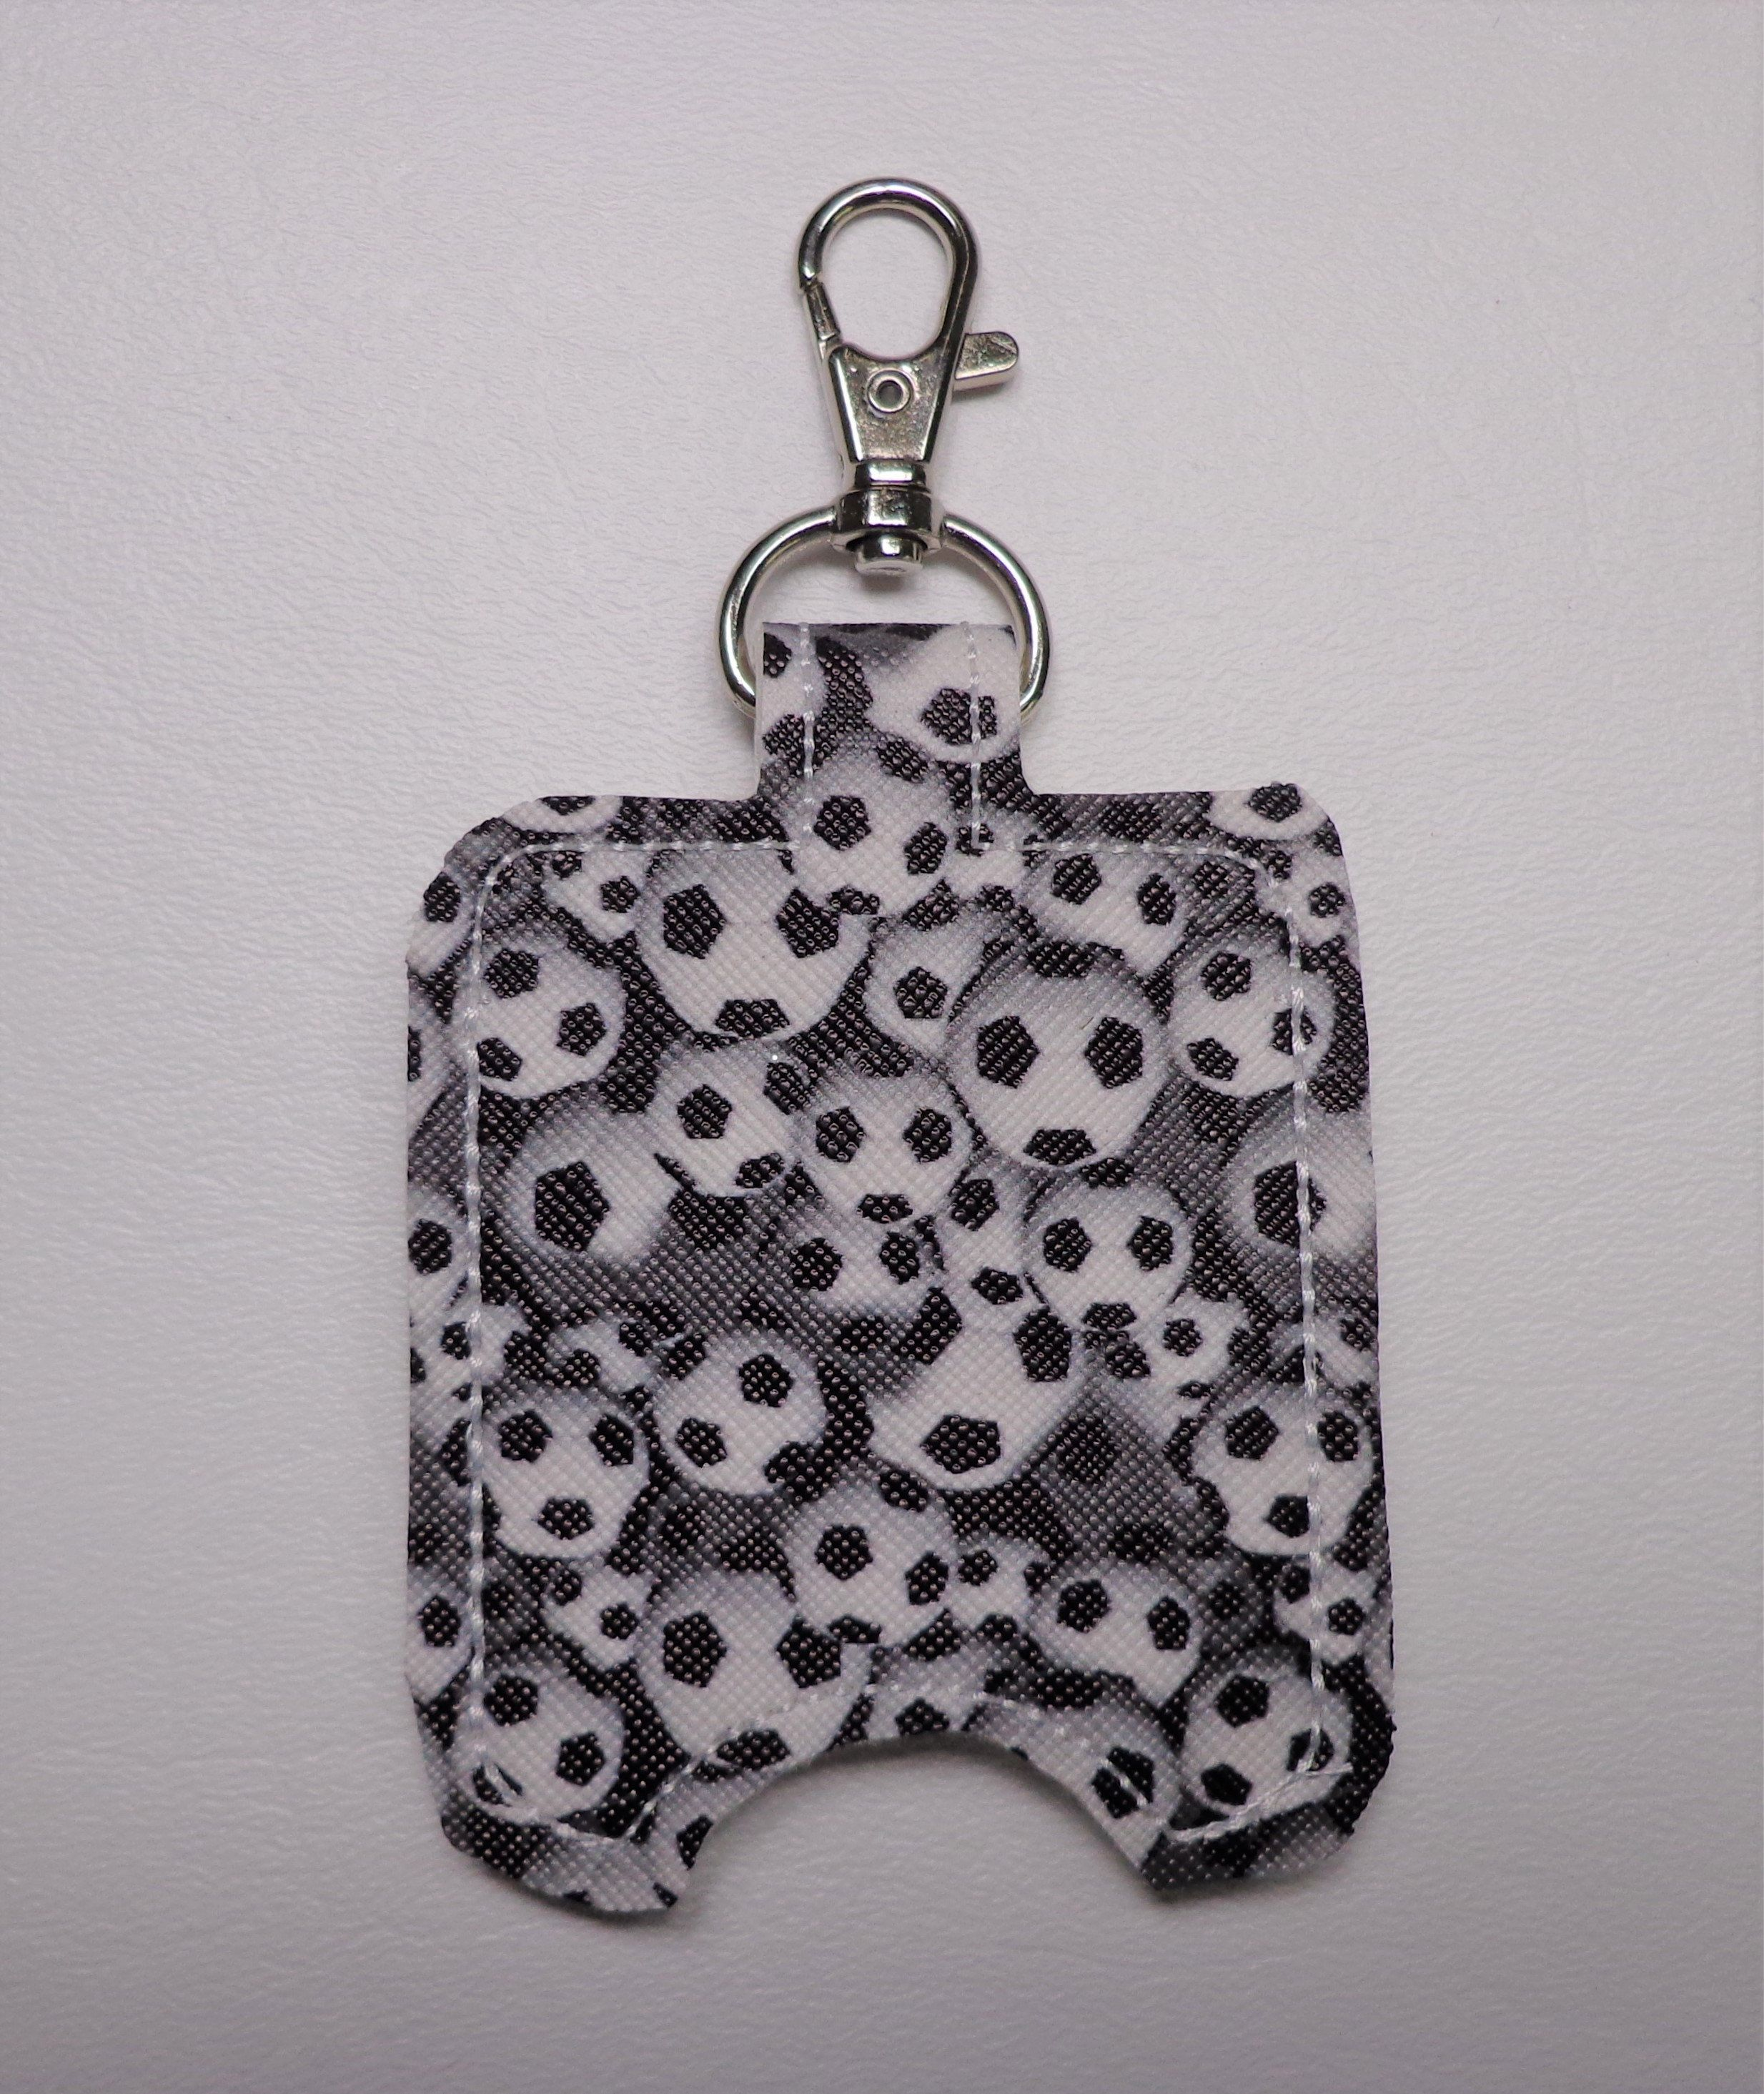 Soccer Ball Hand Sanitizer Holder Hand Sanitizer Hand Sanitizer